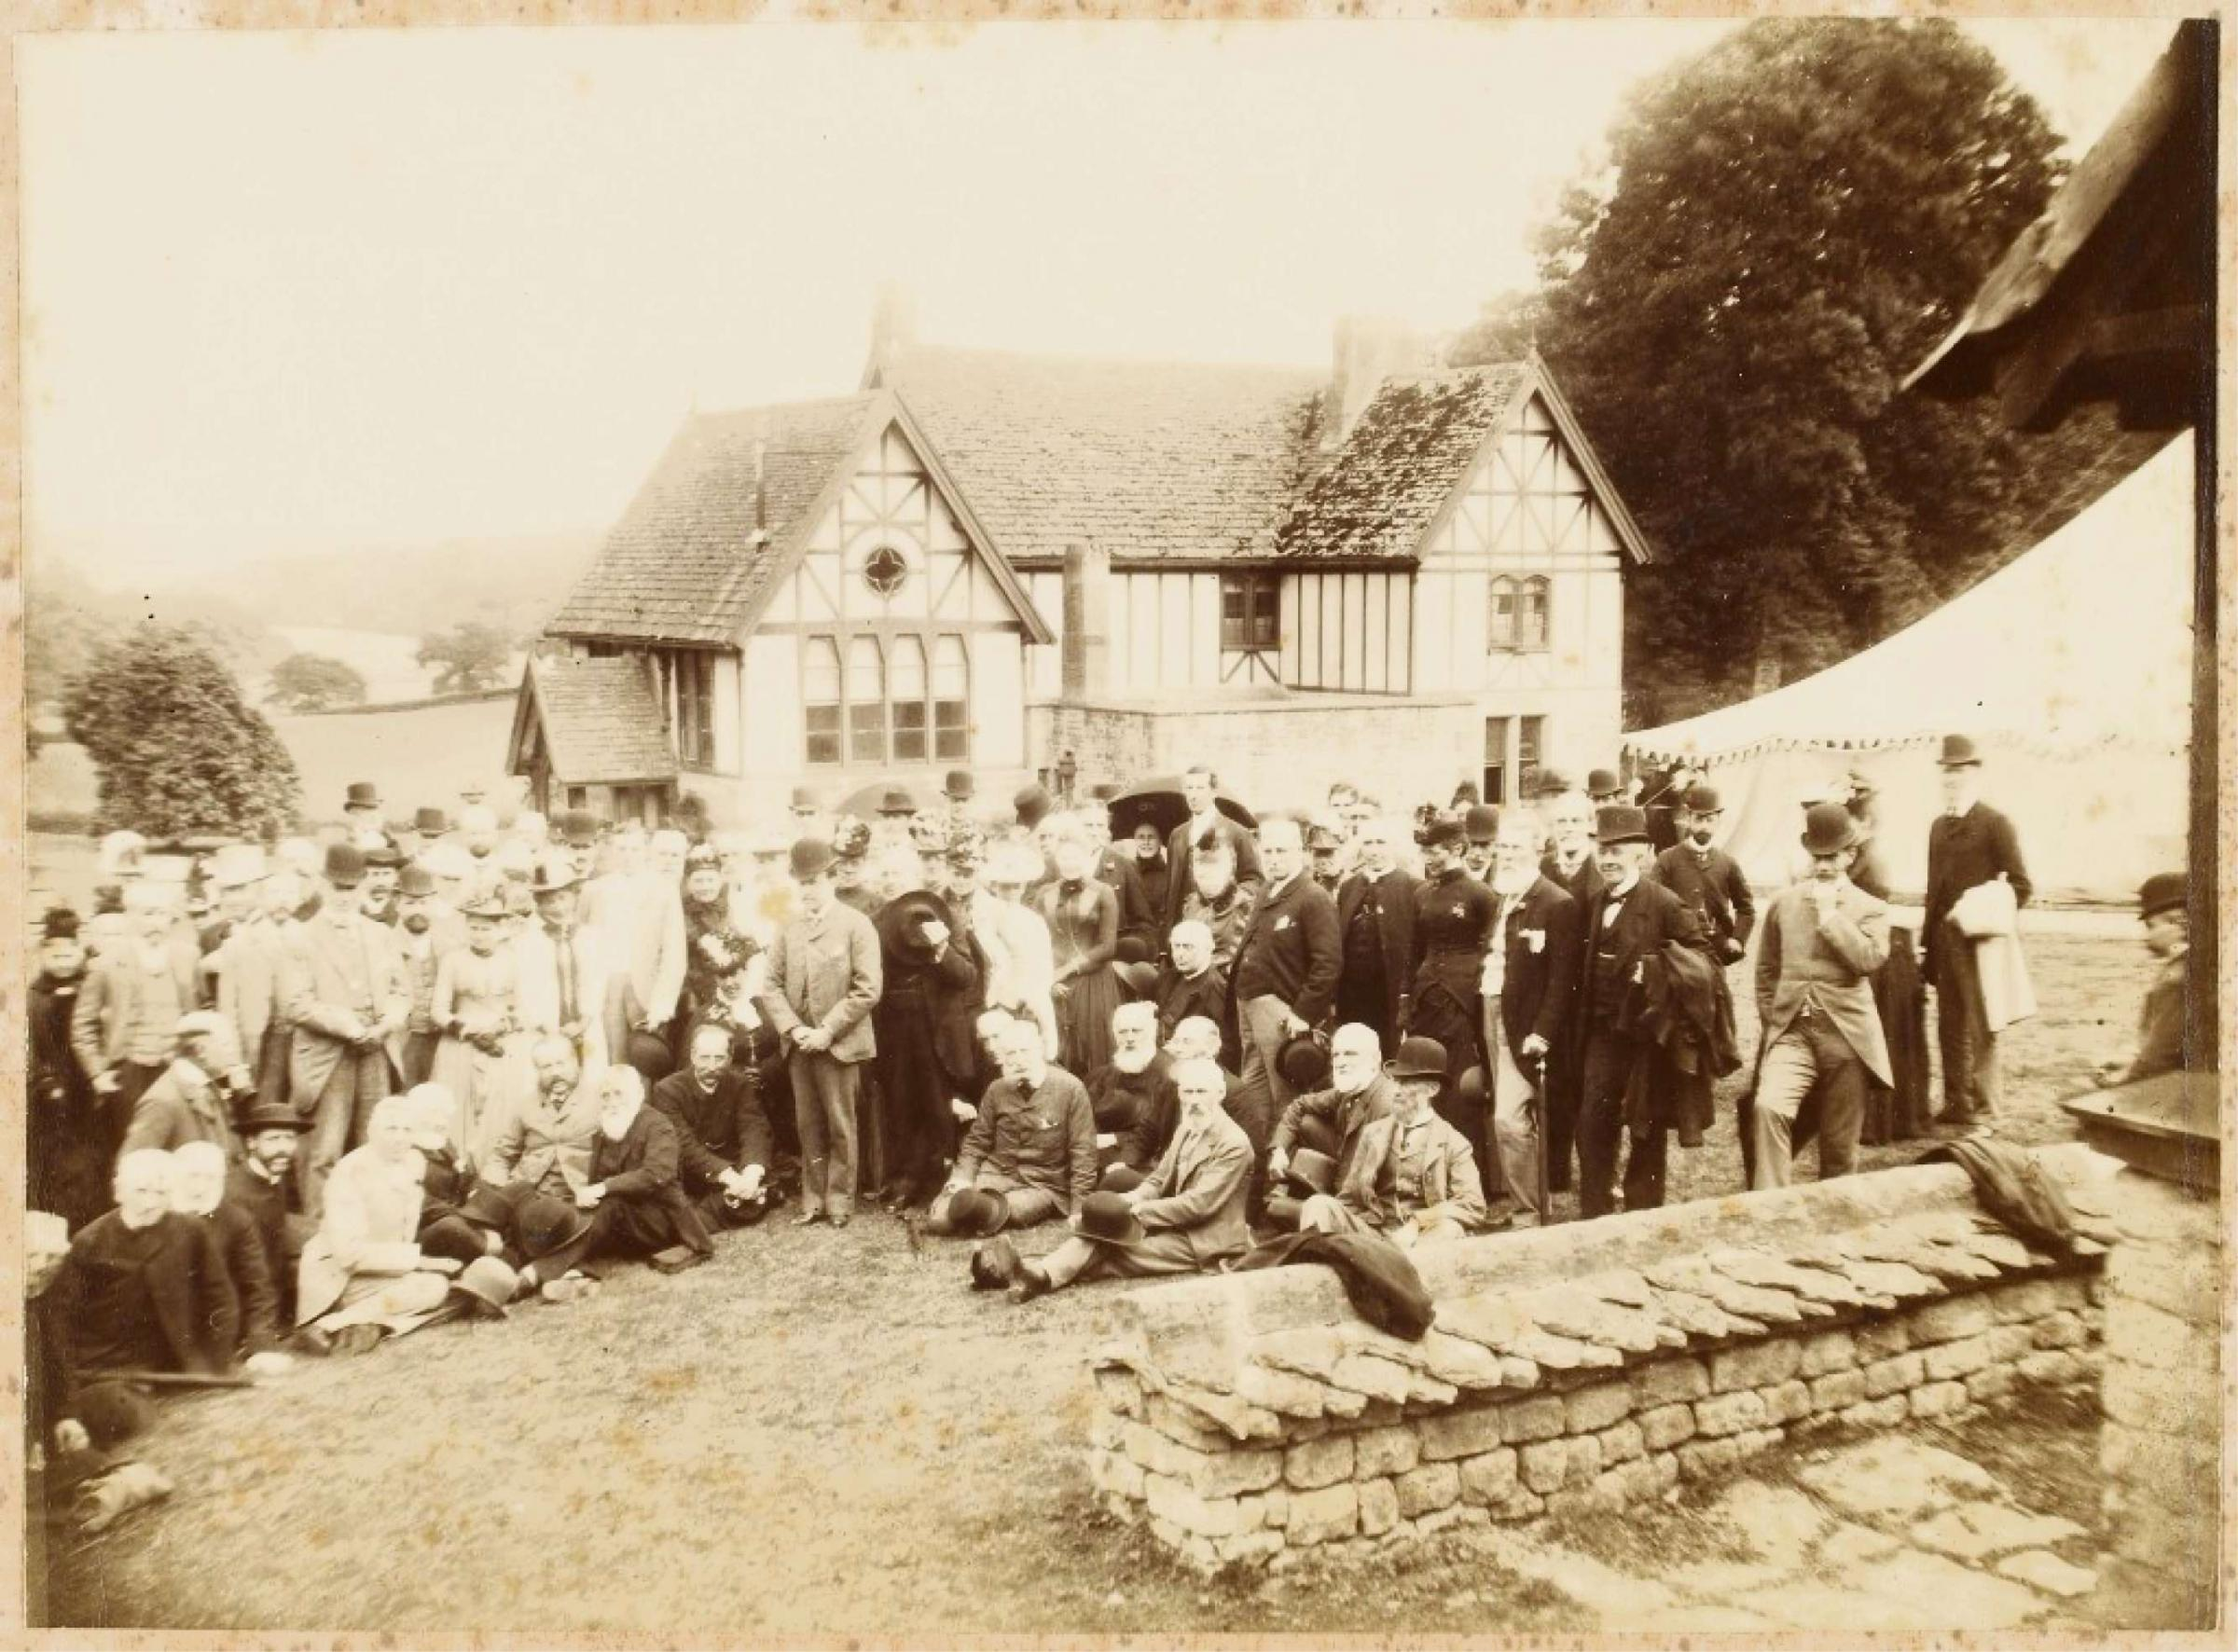 Chedworth Roman Villa celebrates 150th anniversary season with full year of events